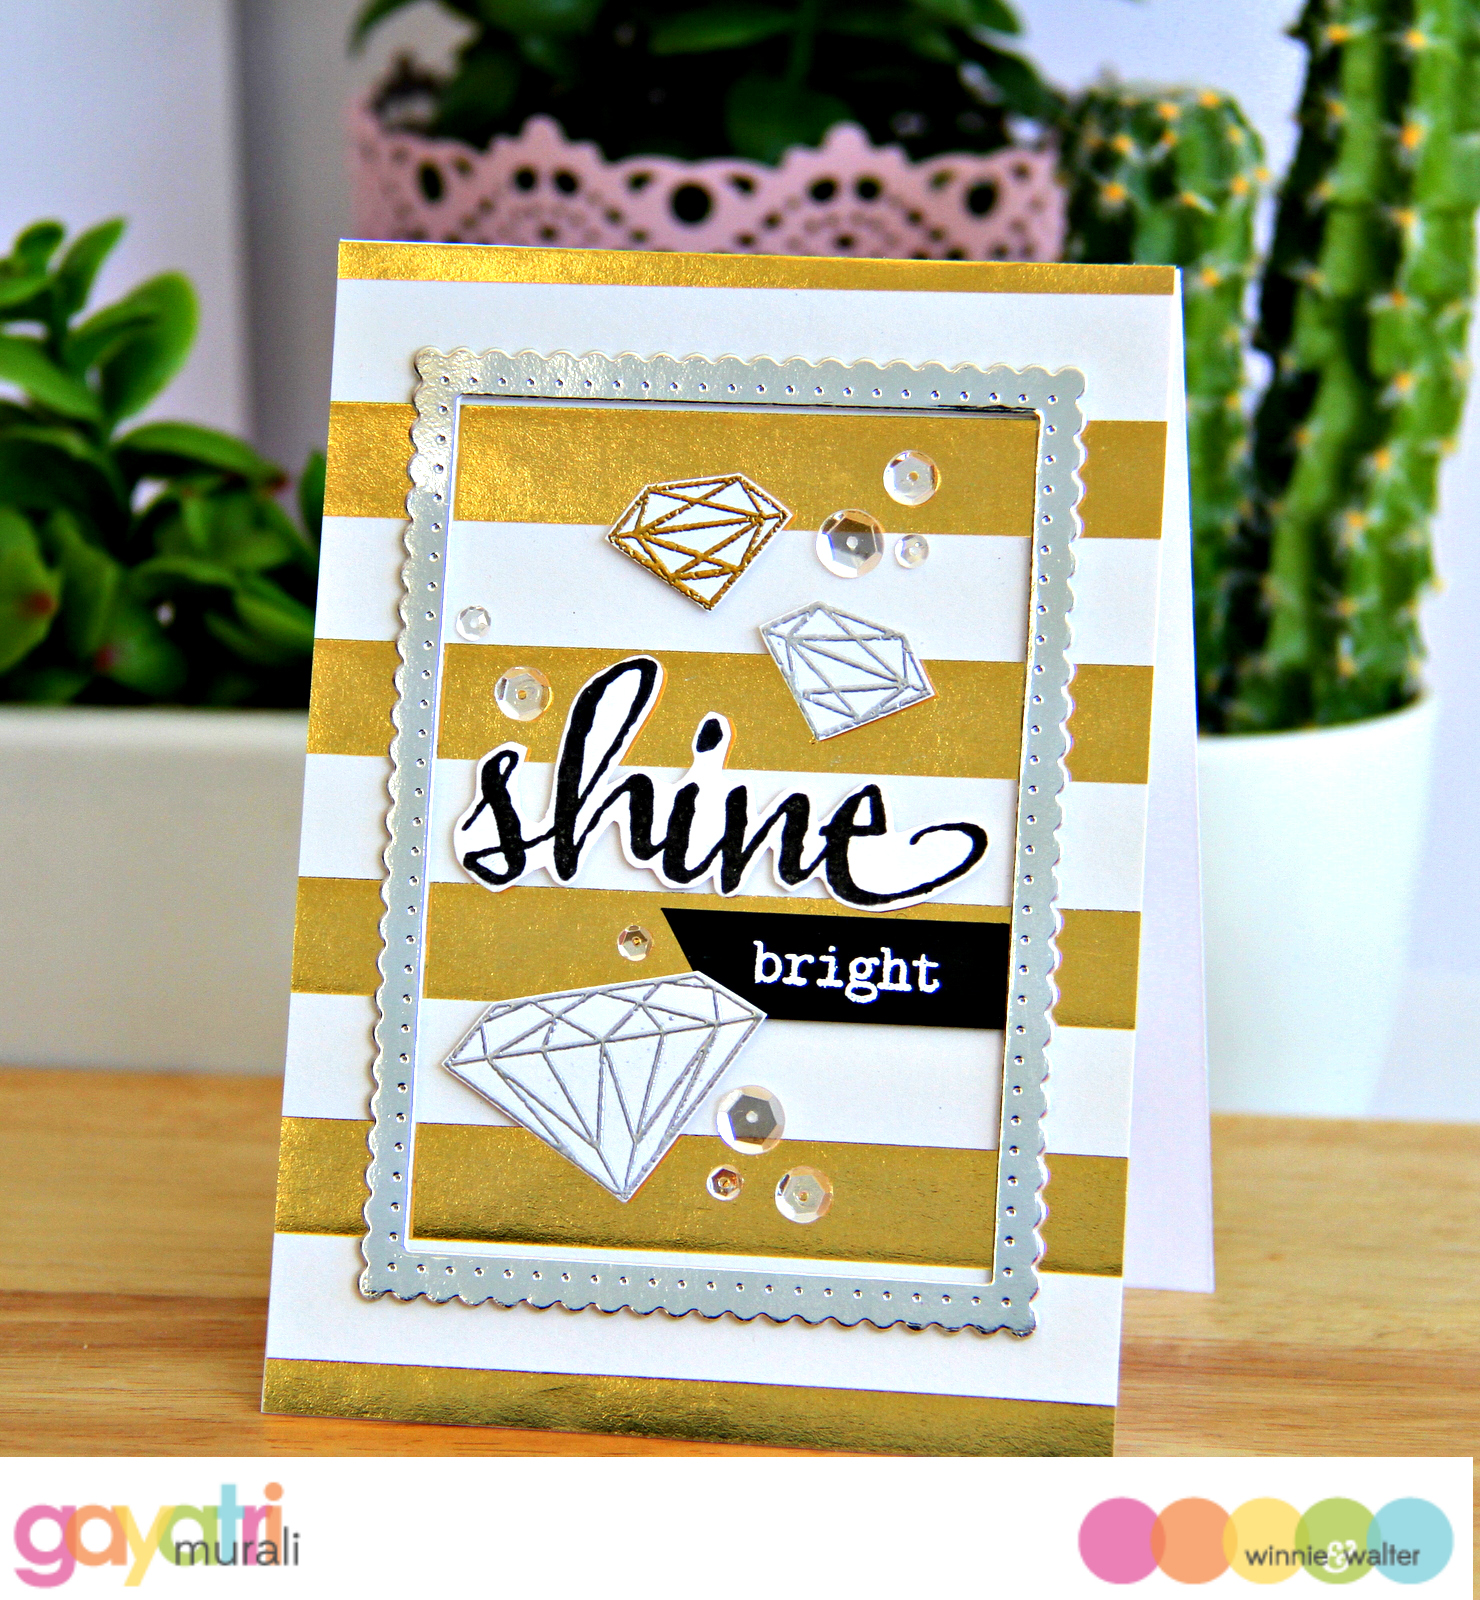 gayatri_Shine bright card